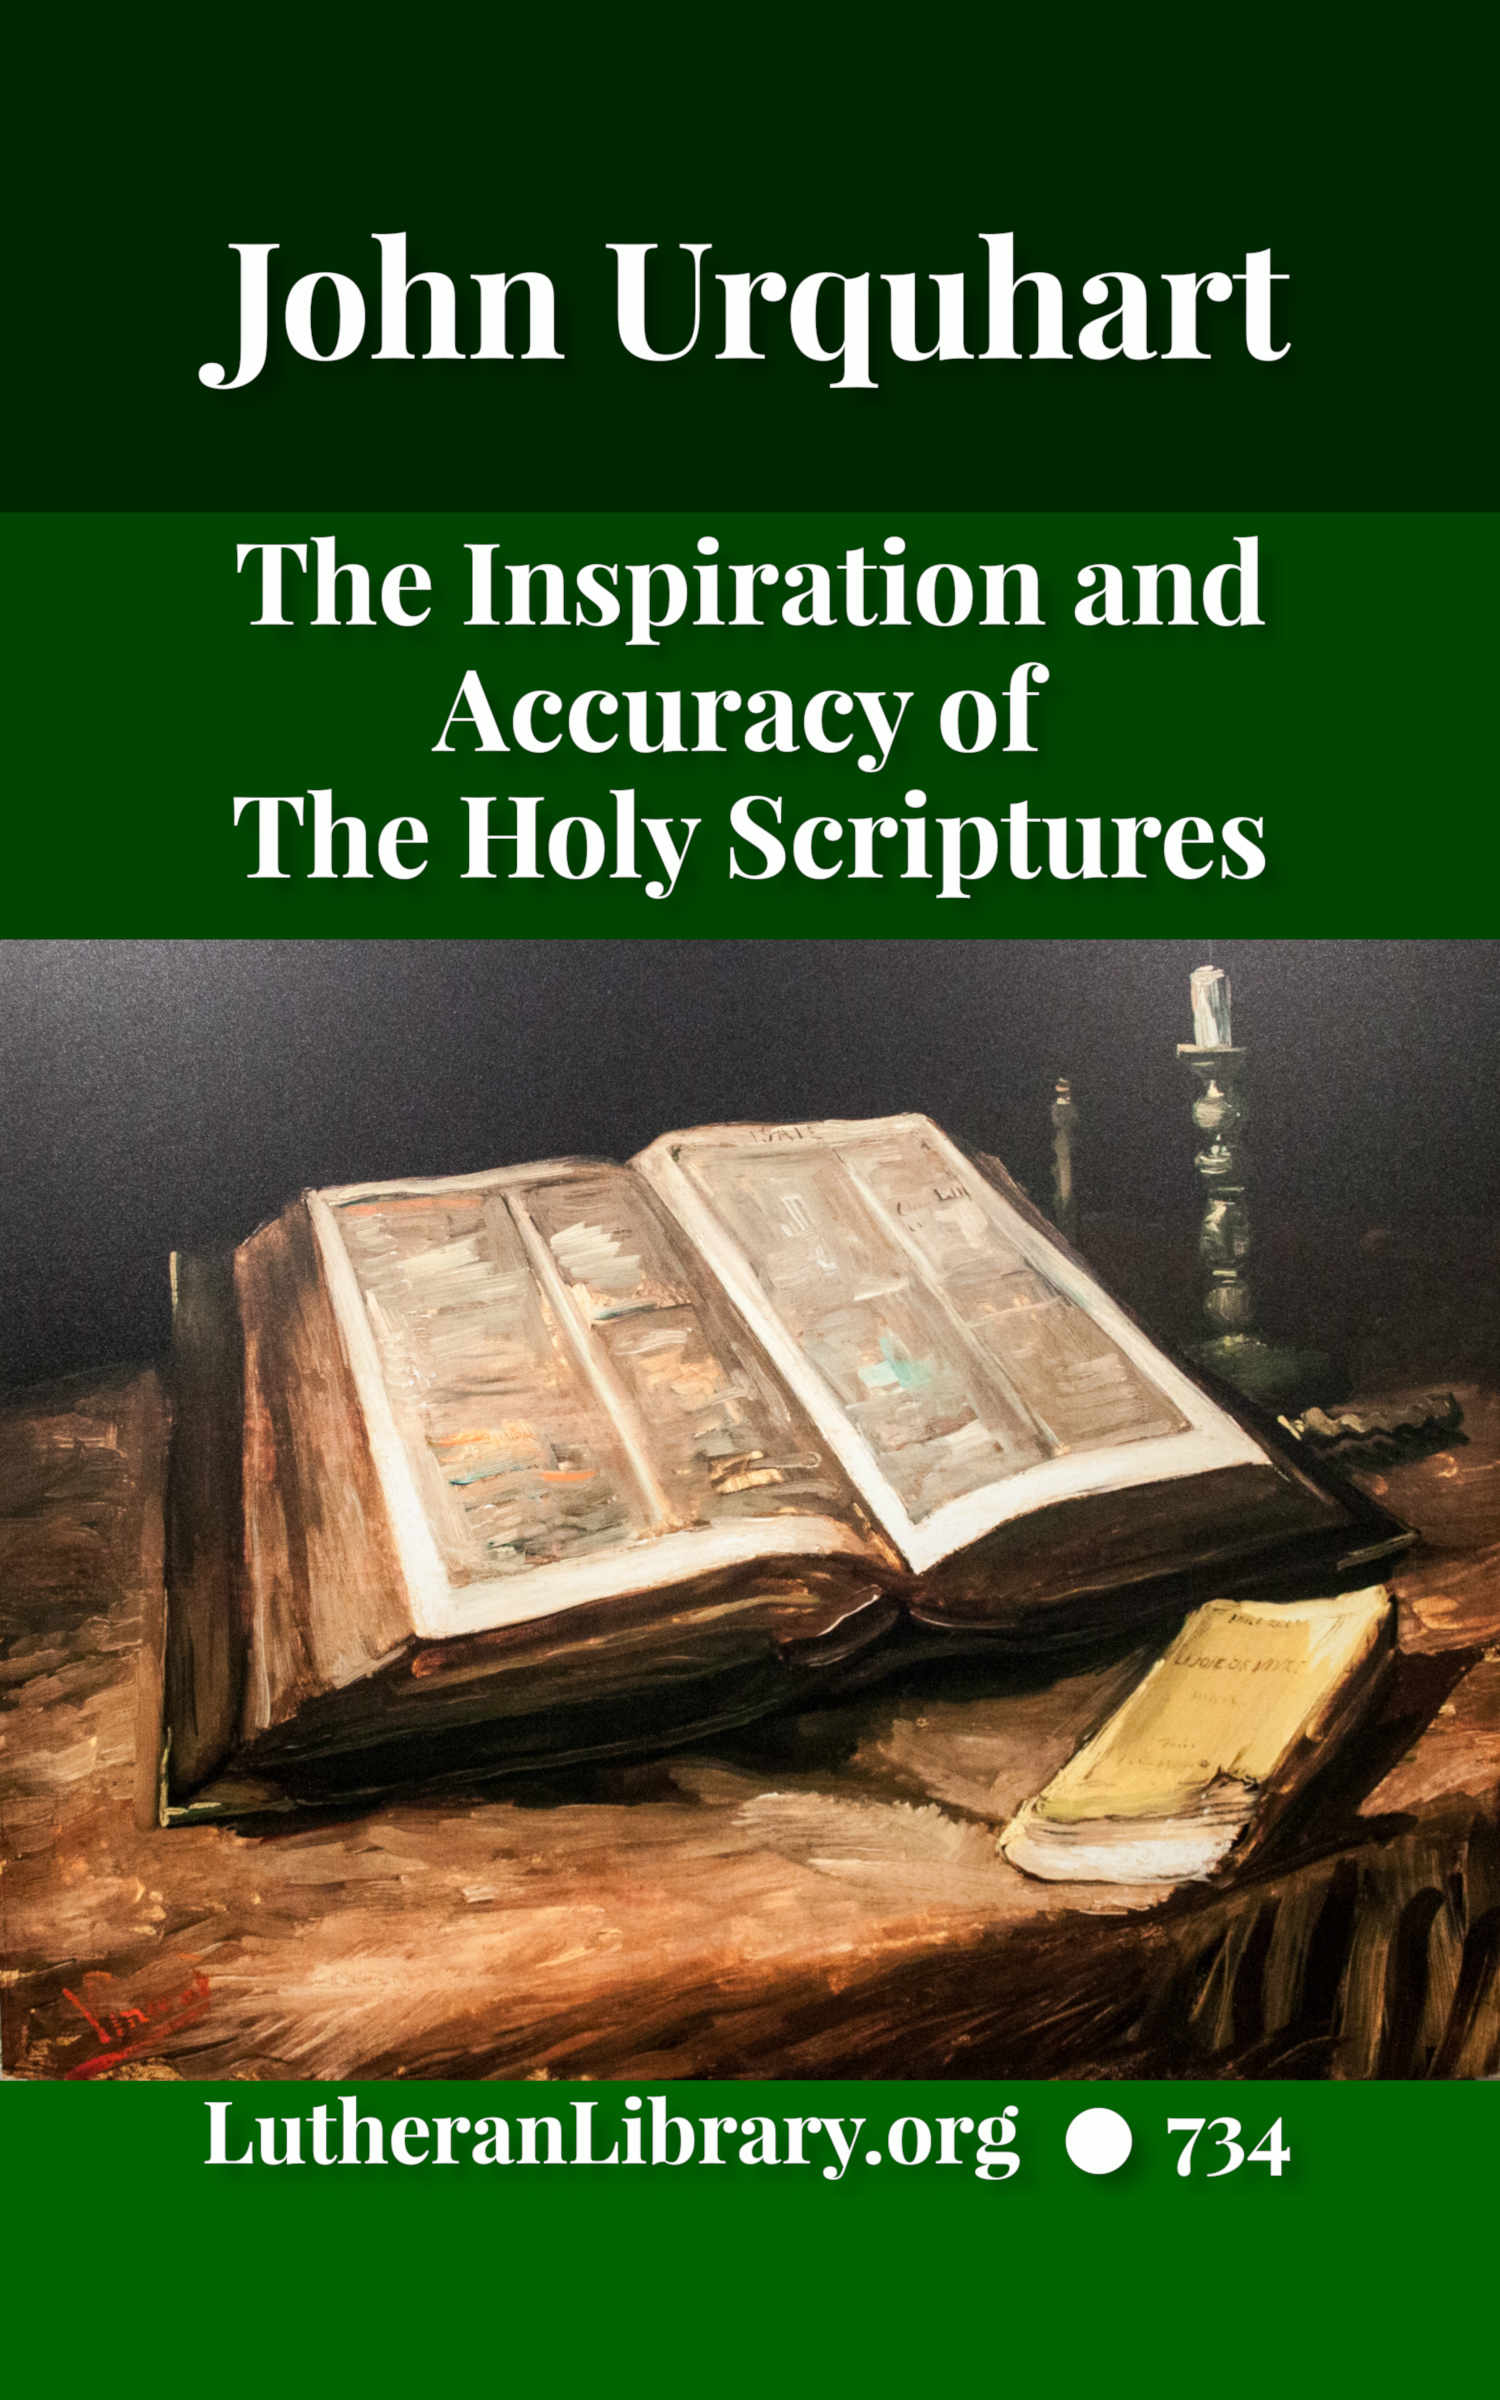 The Inspiration and Accuracy of the Holy Scriptures by John Urquhart